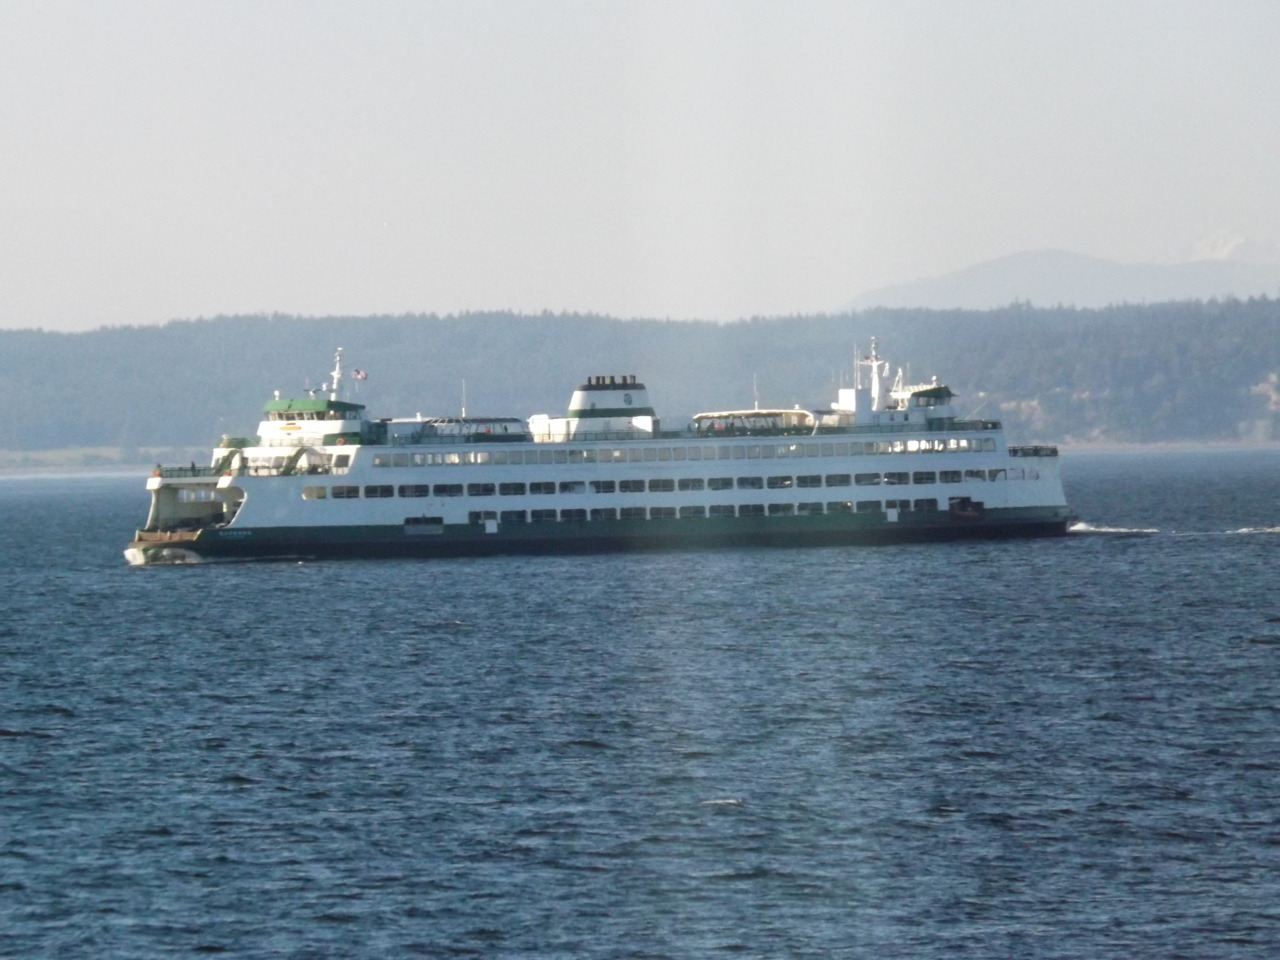 Some boats I saw on the Ferry to Bainbridge island